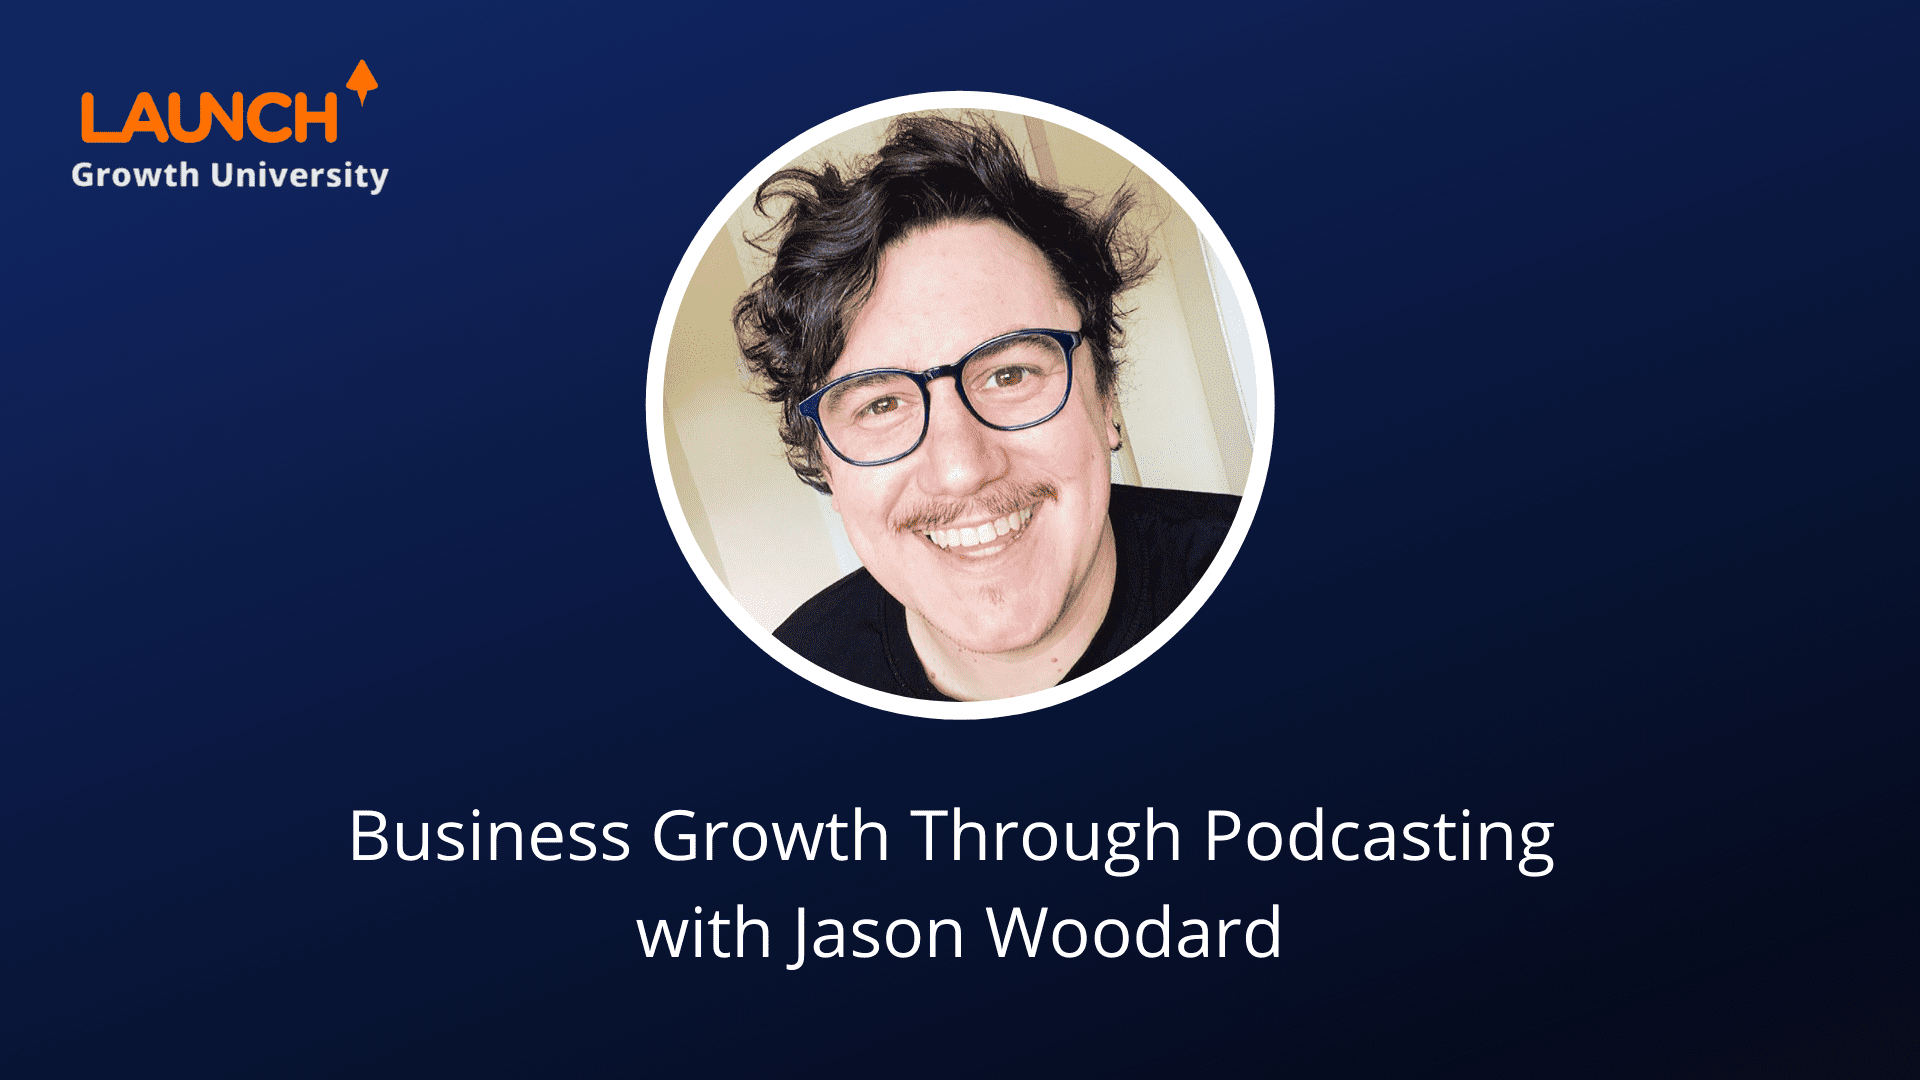 Business Growth Through Podcasting